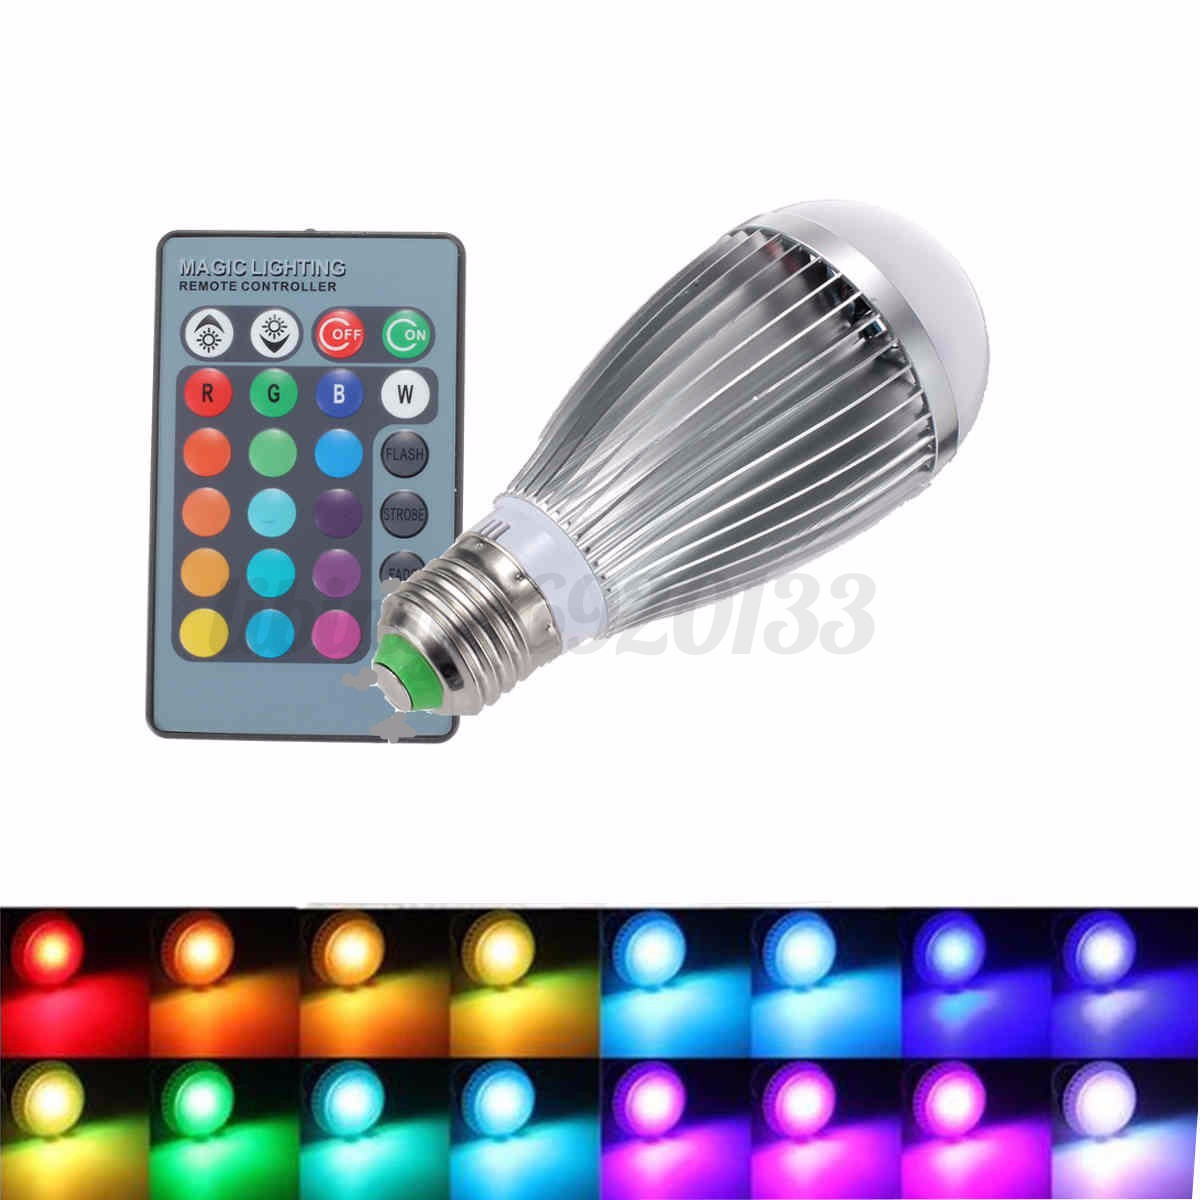 Gu10 C 3w 9w 12w Rgb E27 E14 B22 Mr16 Gu10 Led Light Color